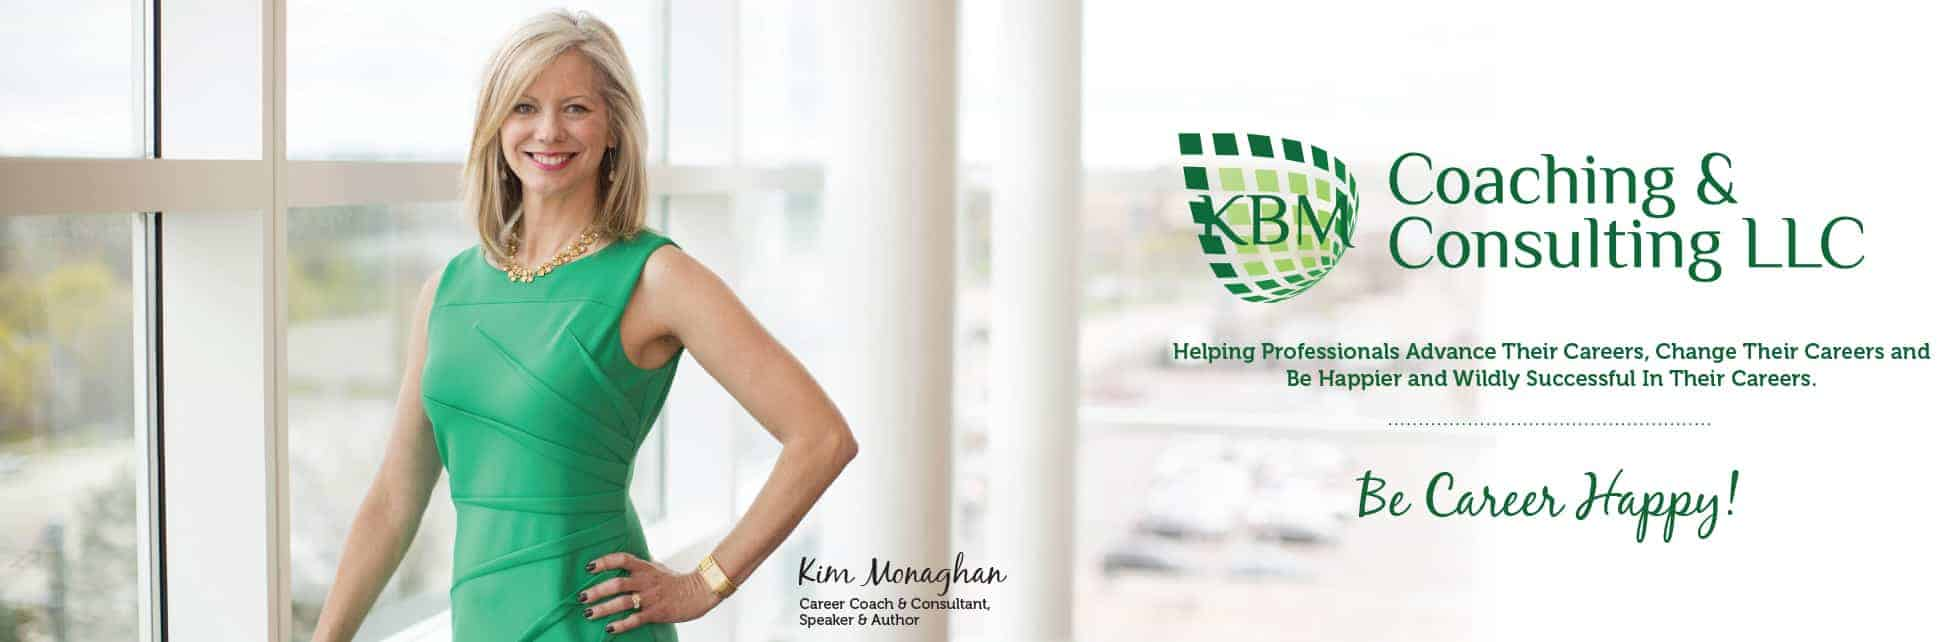 Kim Monaghan Career Coaching and Consulting Banner